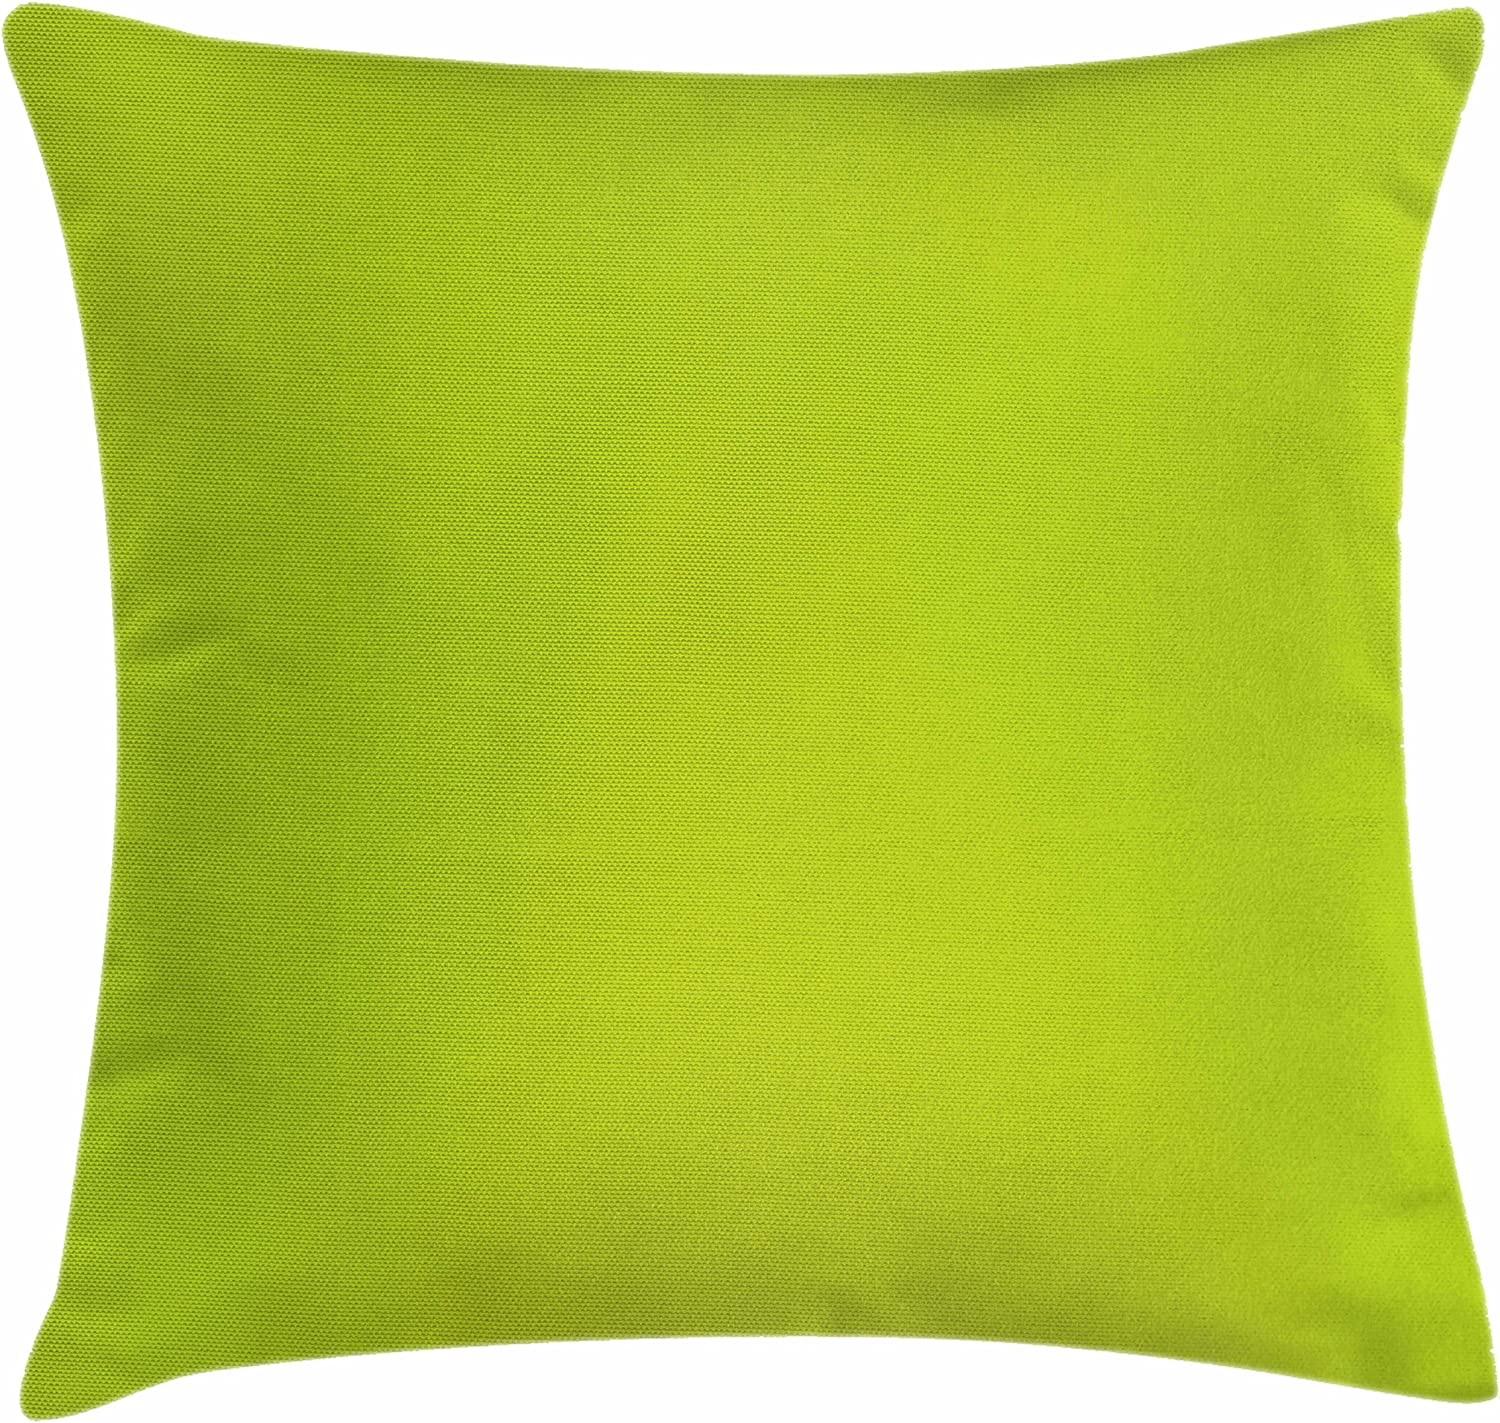 """Ambesonne Lime Green Throw Pillow Cushion Cover, Empty Backdrop Blurry Off Focus Pastel Toned Shade Color Spring Theme Abstract, Decorative Square Accent Pillow Case, 16"""" X 16"""", Apple Green"""